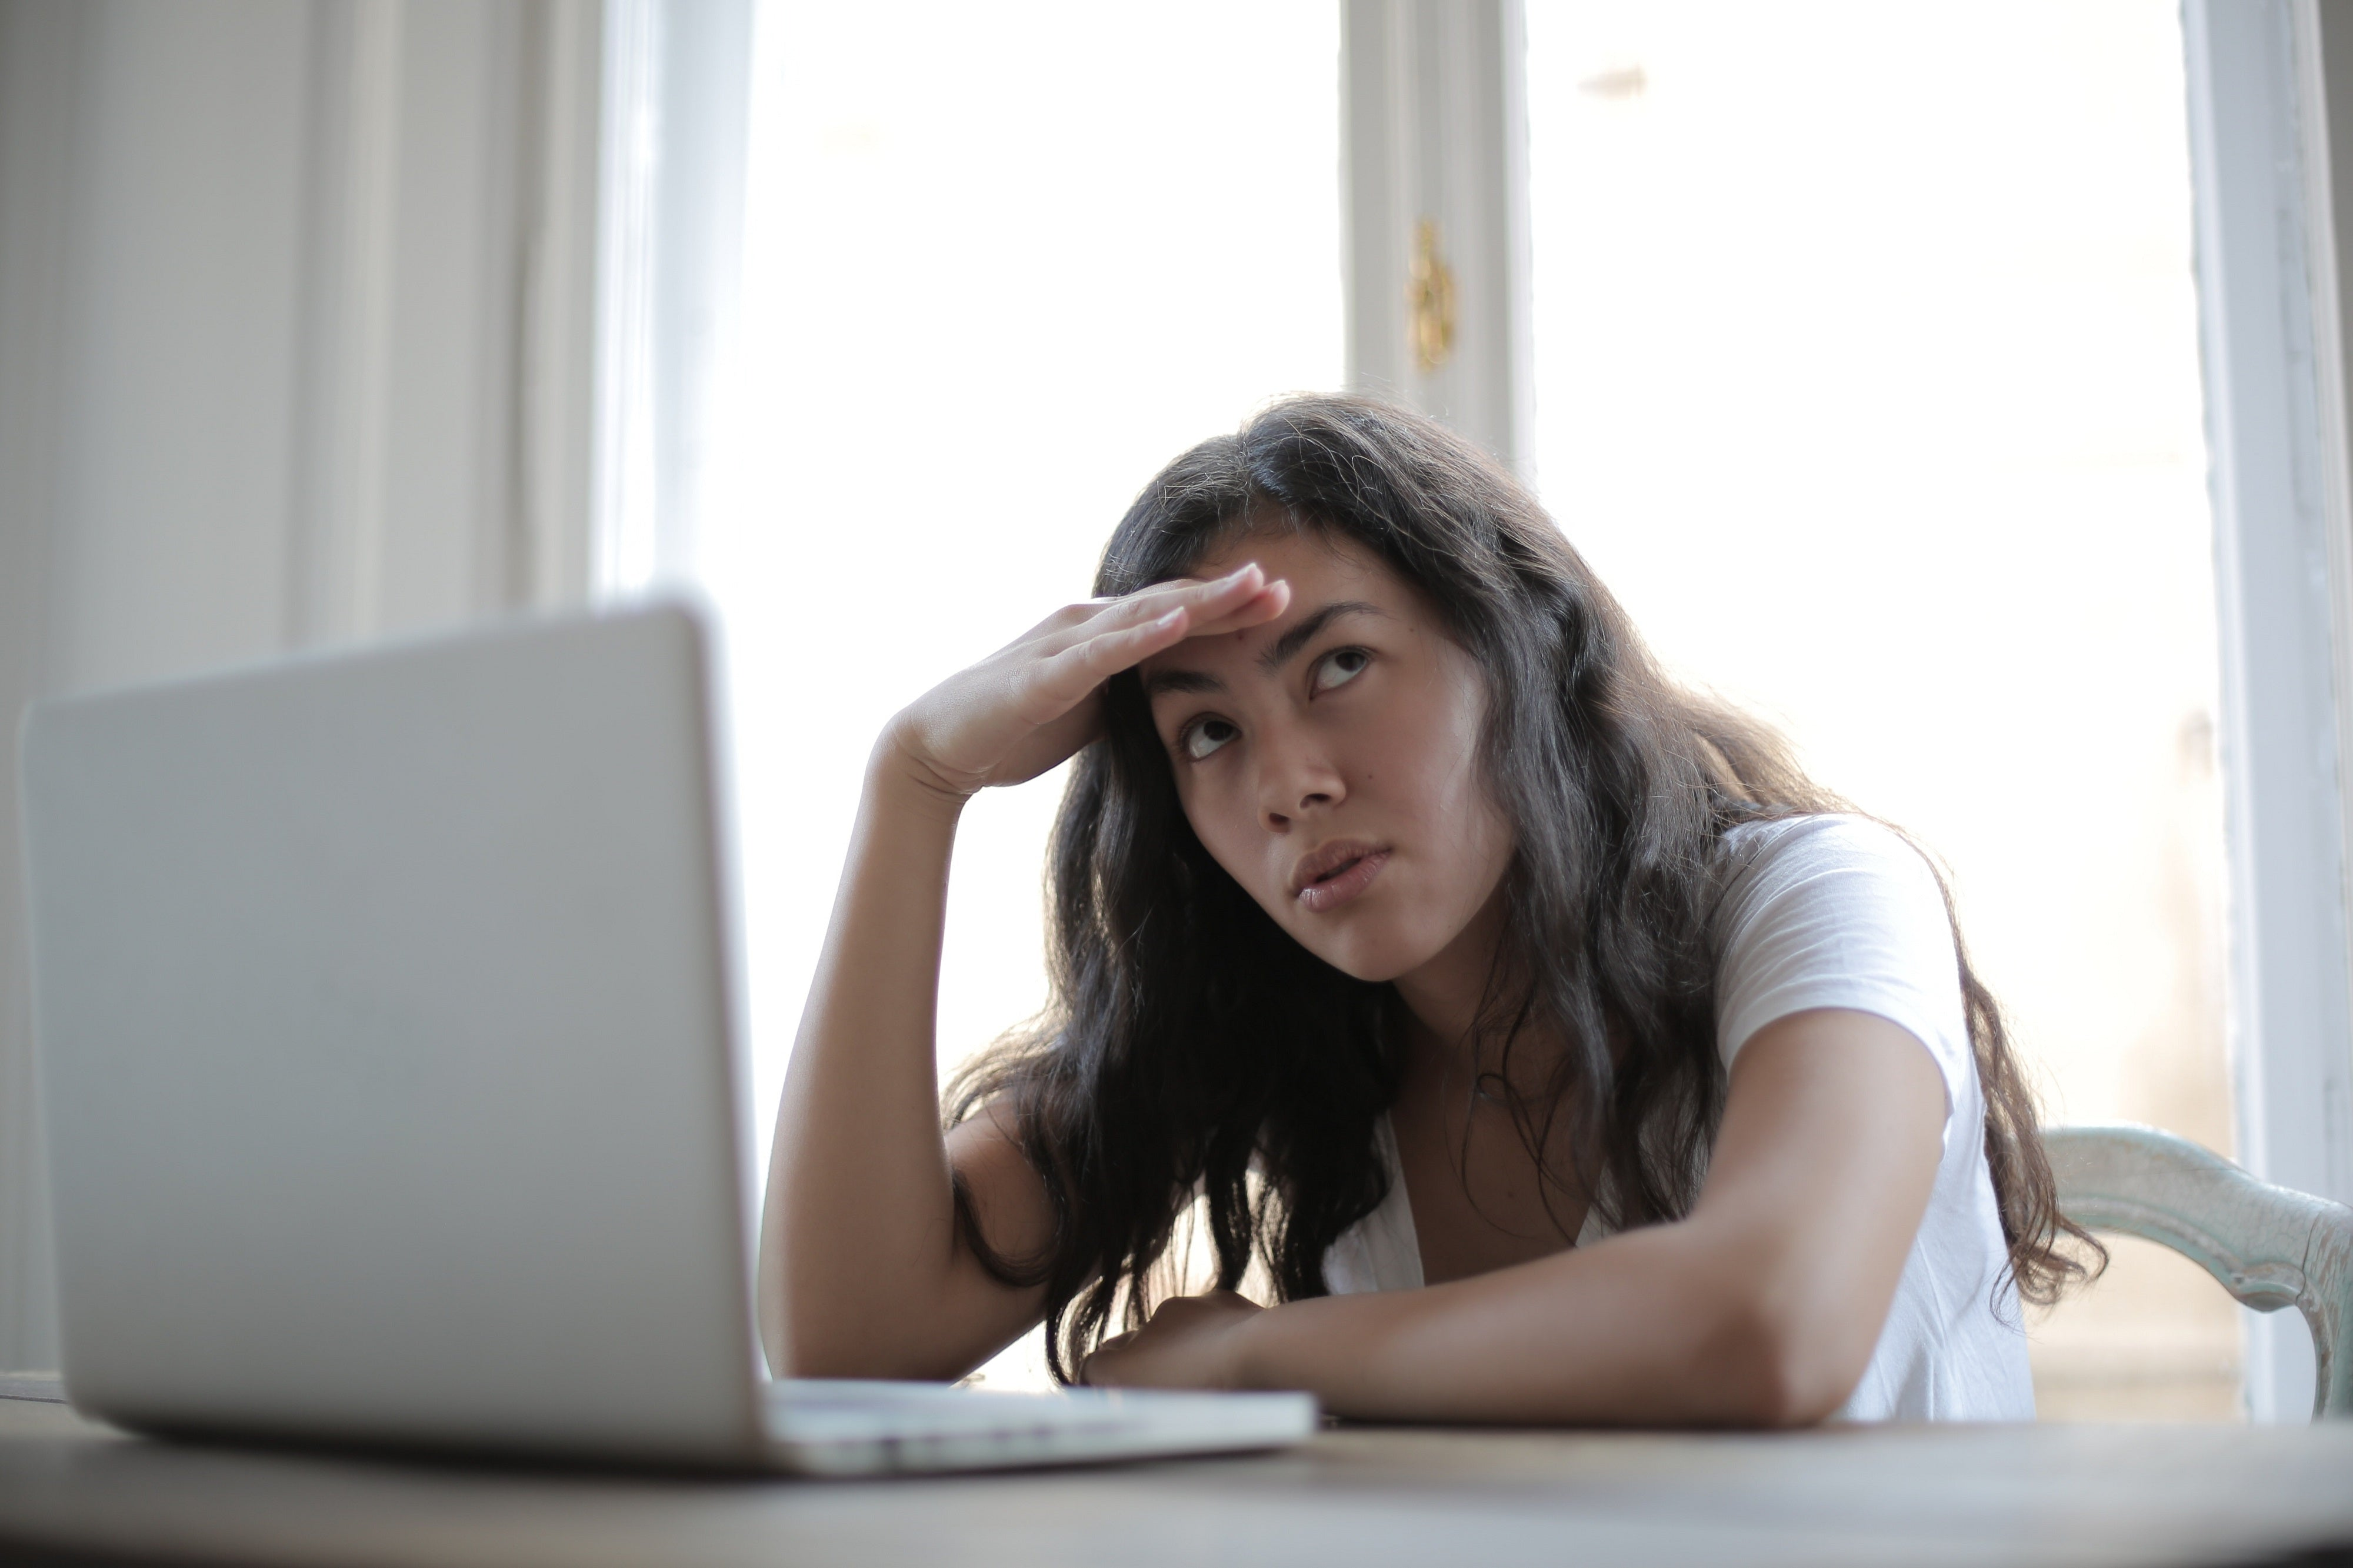 Frustrated young person sitting in front of laptop.